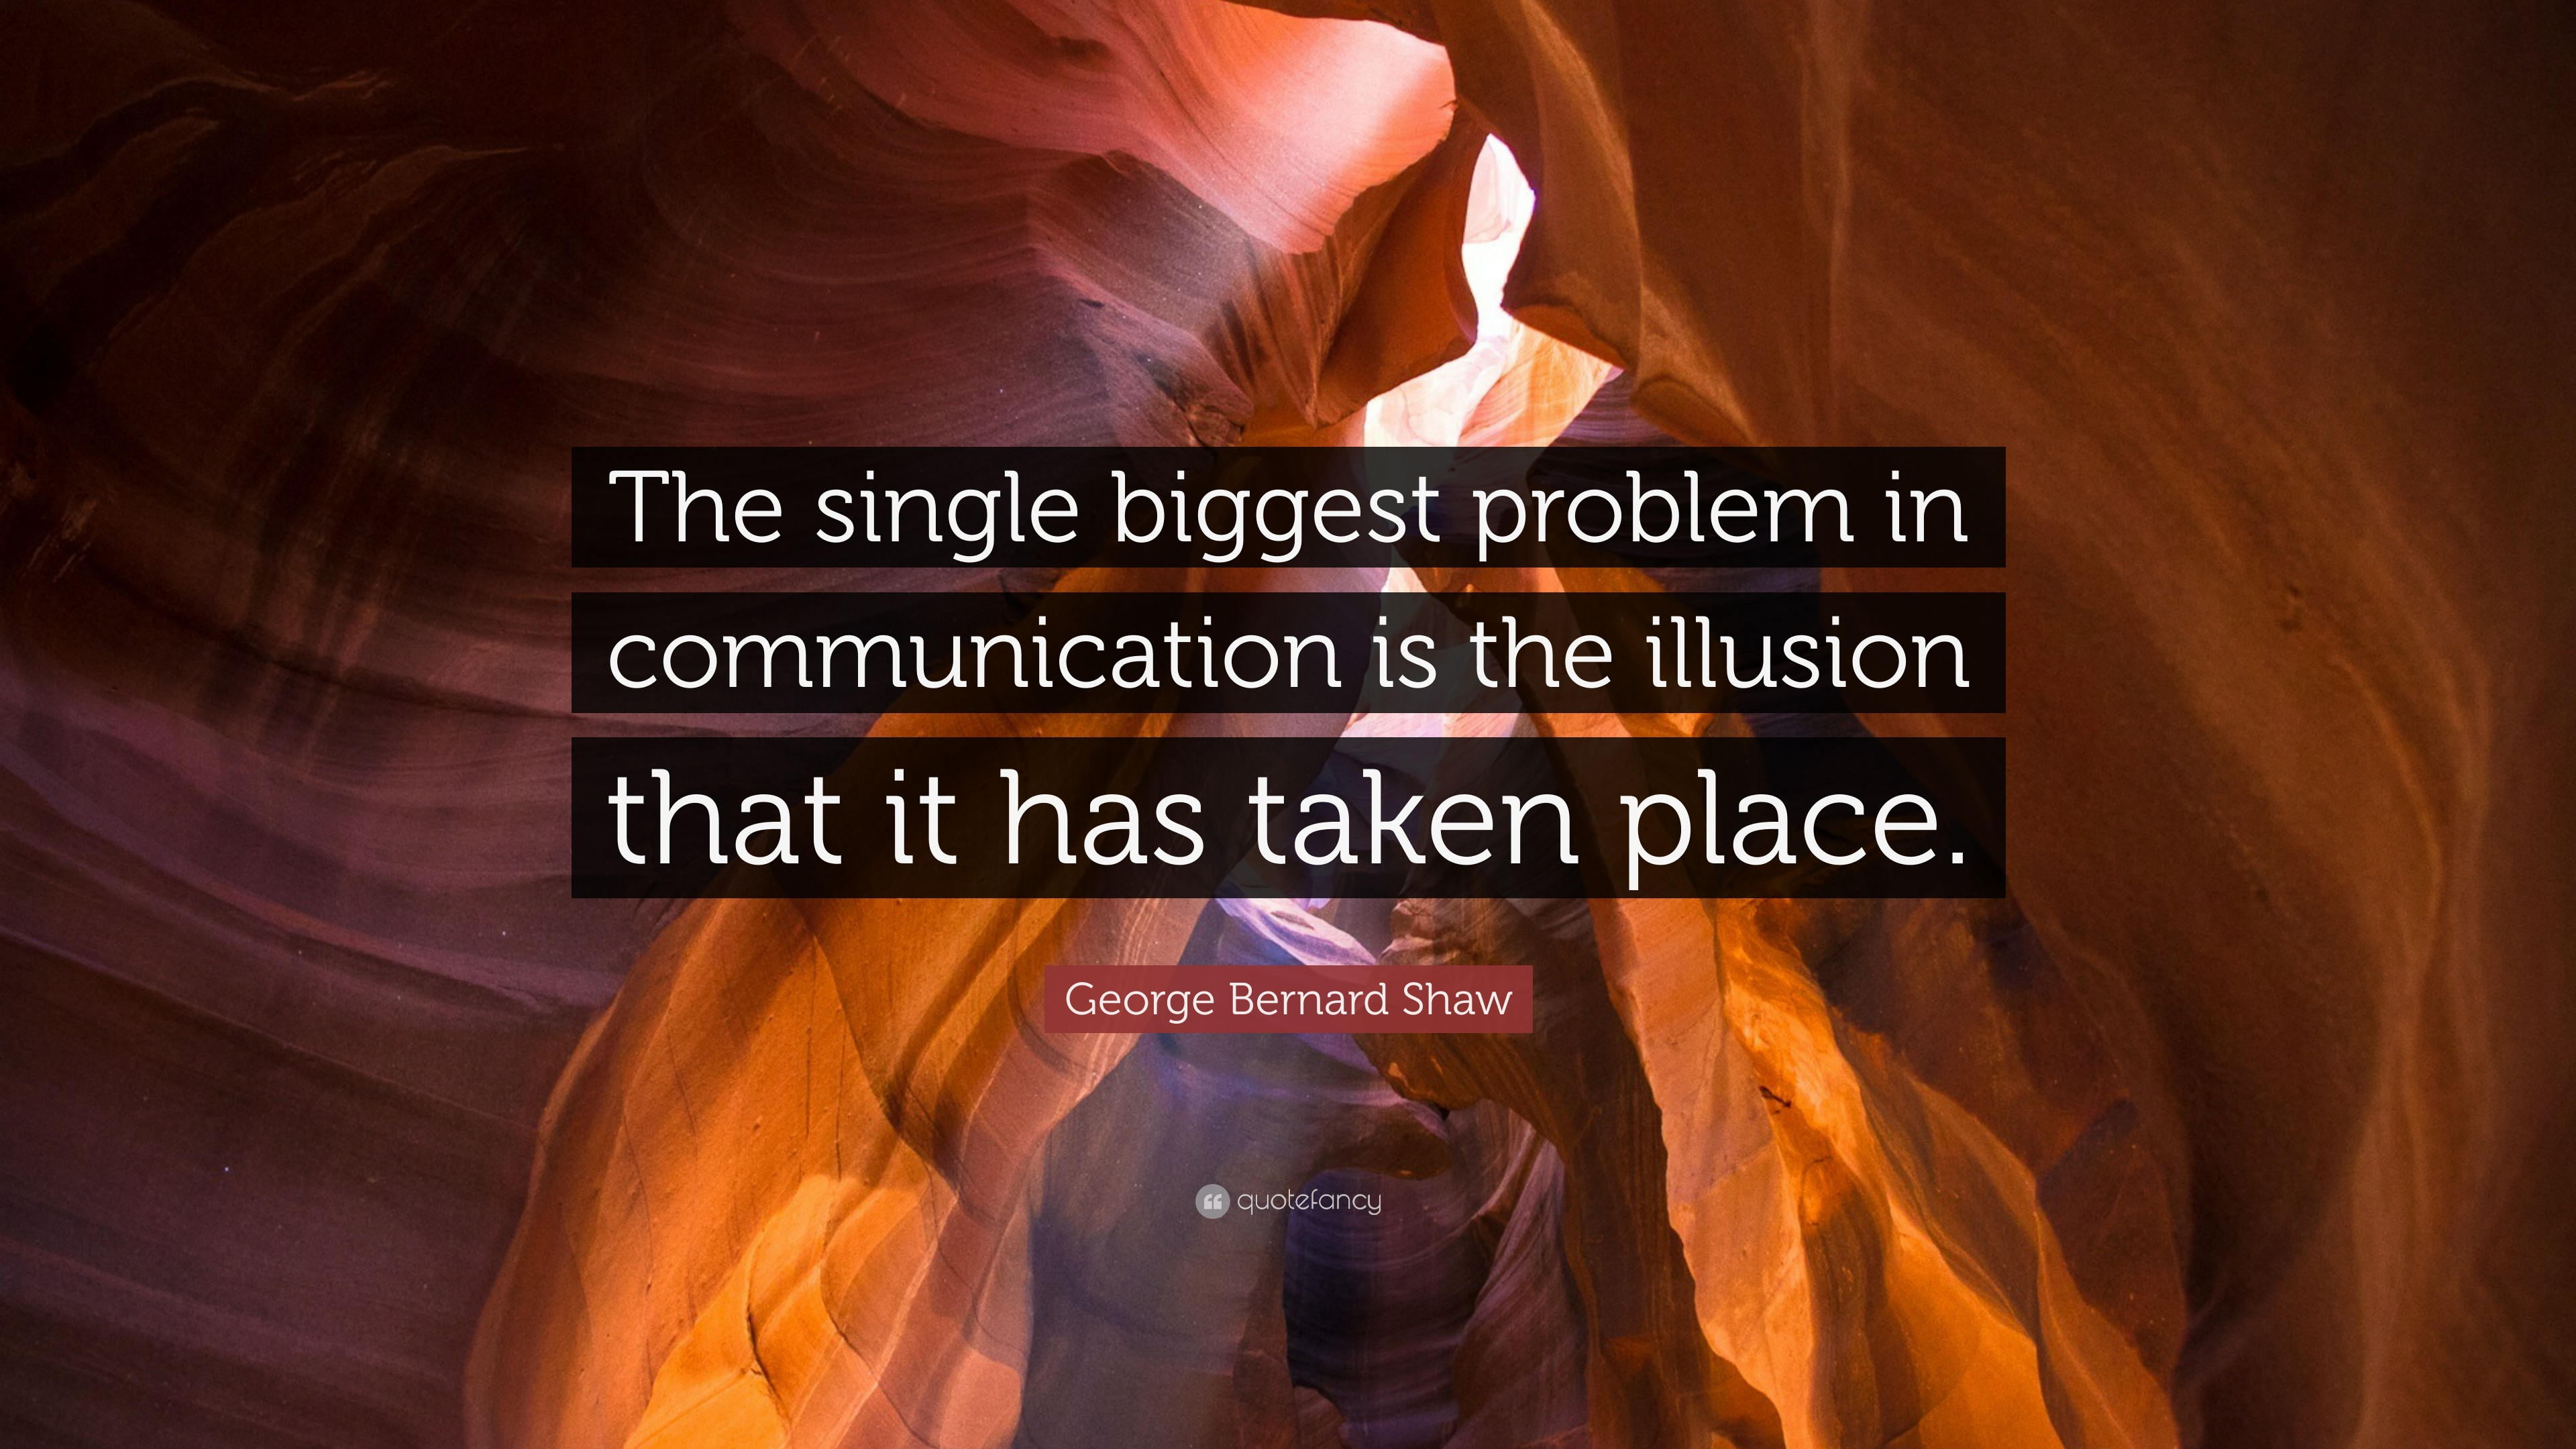 the single biggest problem in communication is the illusion that it has taken place source